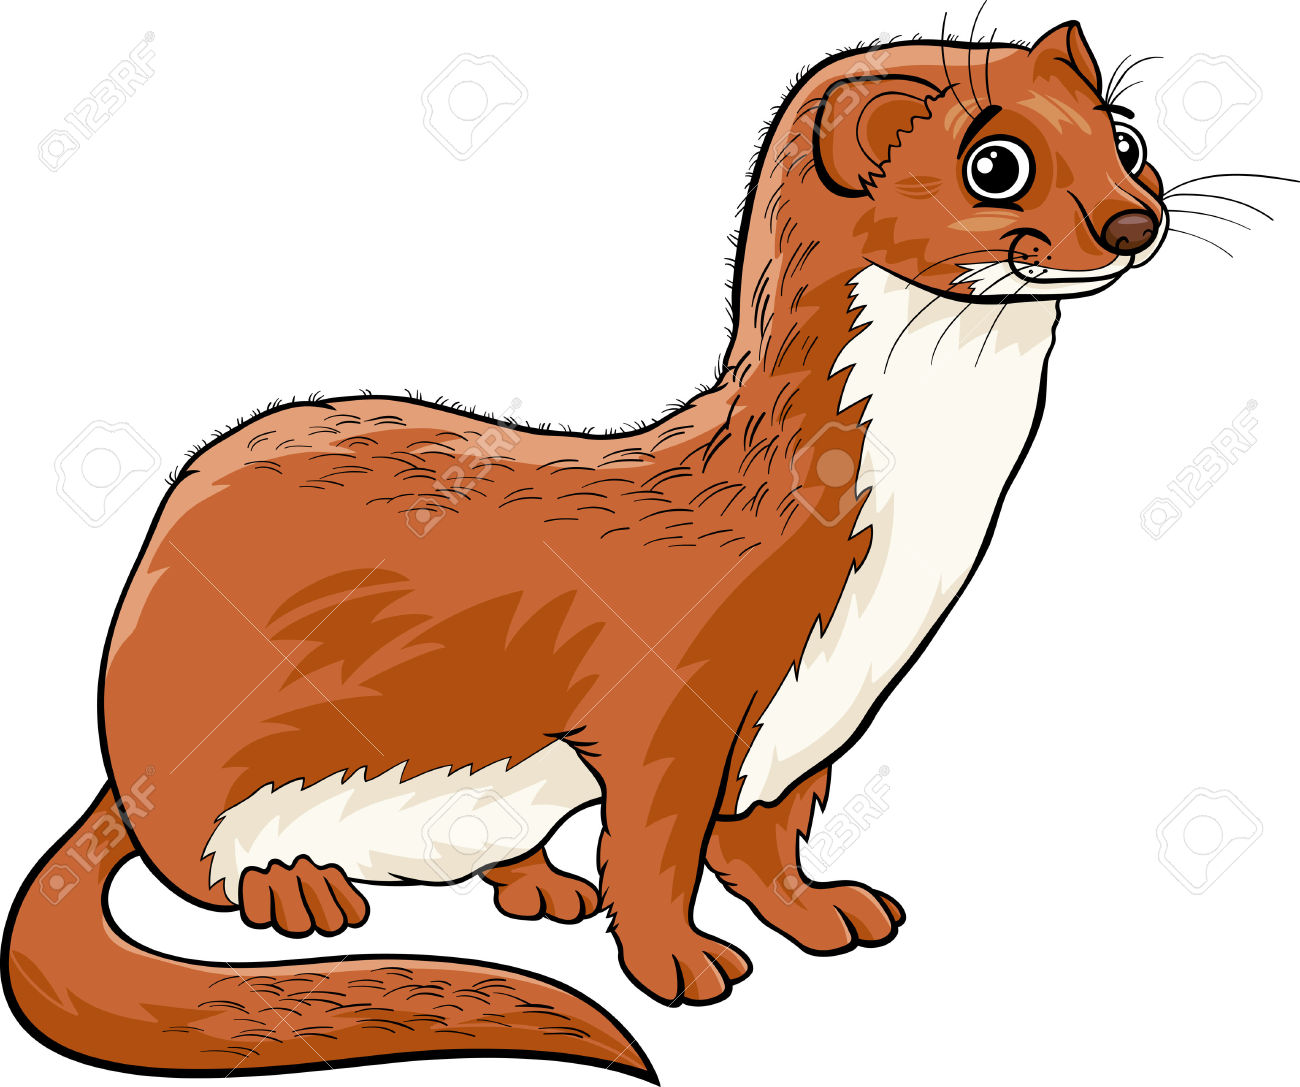 1300x1087 Weasel Clipart Cute Cartoon